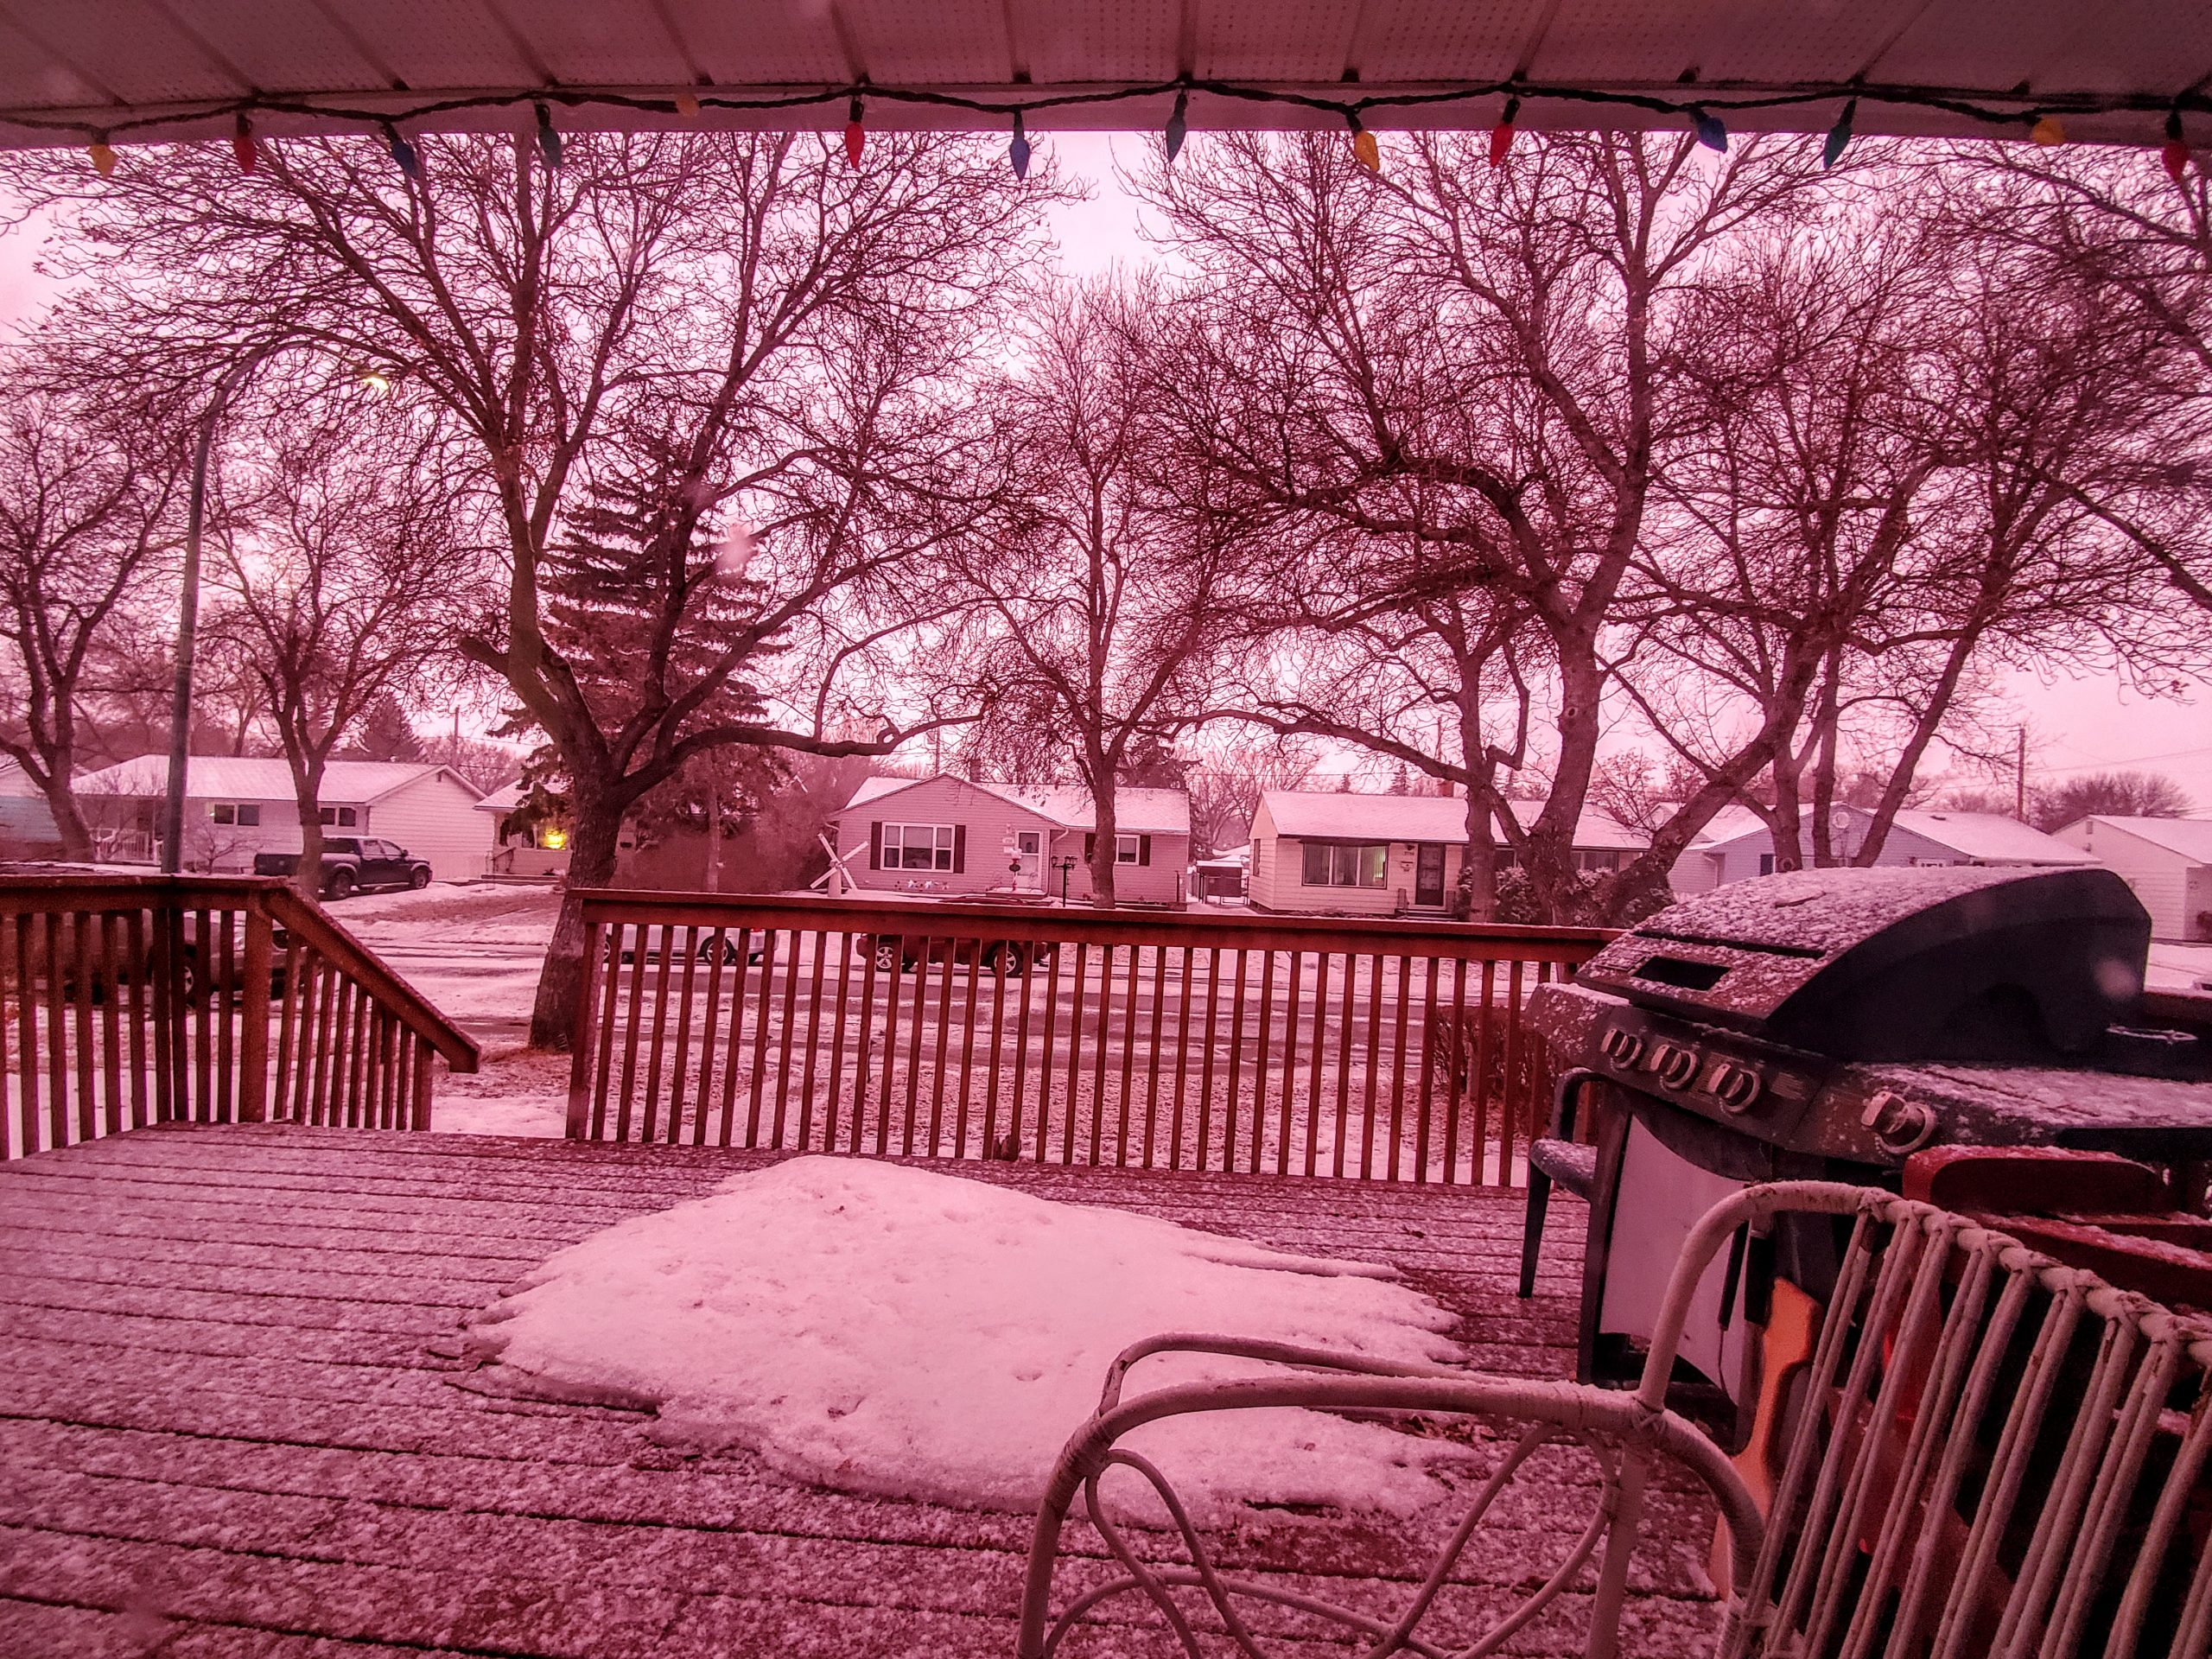 pink hue from sunset during snowfall